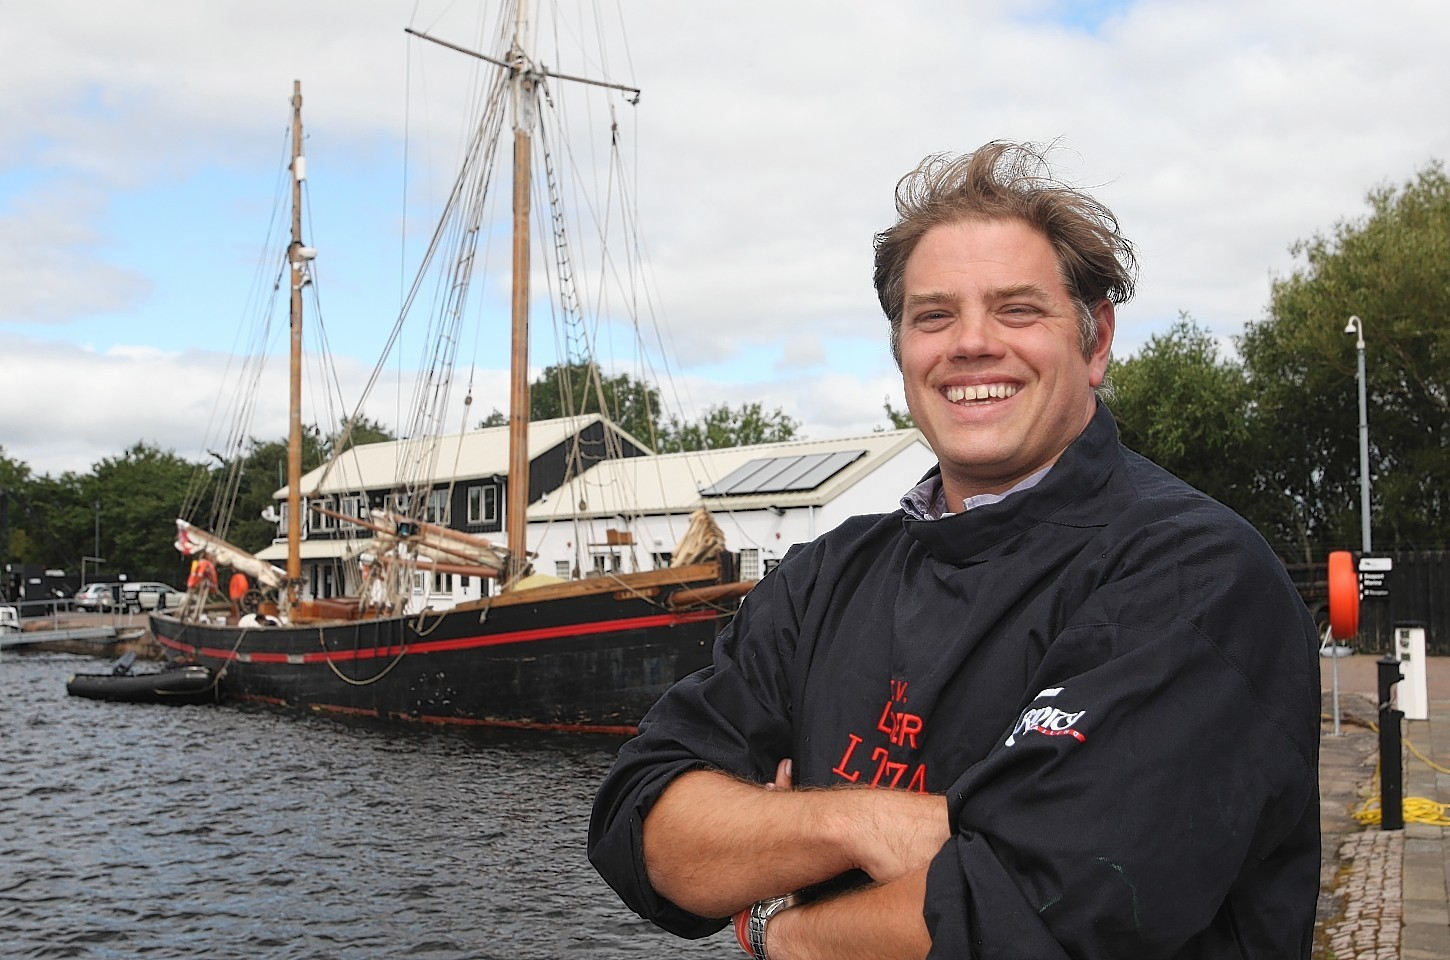 Skipper Ben Swain with the historic ship, Leader, in Inverness